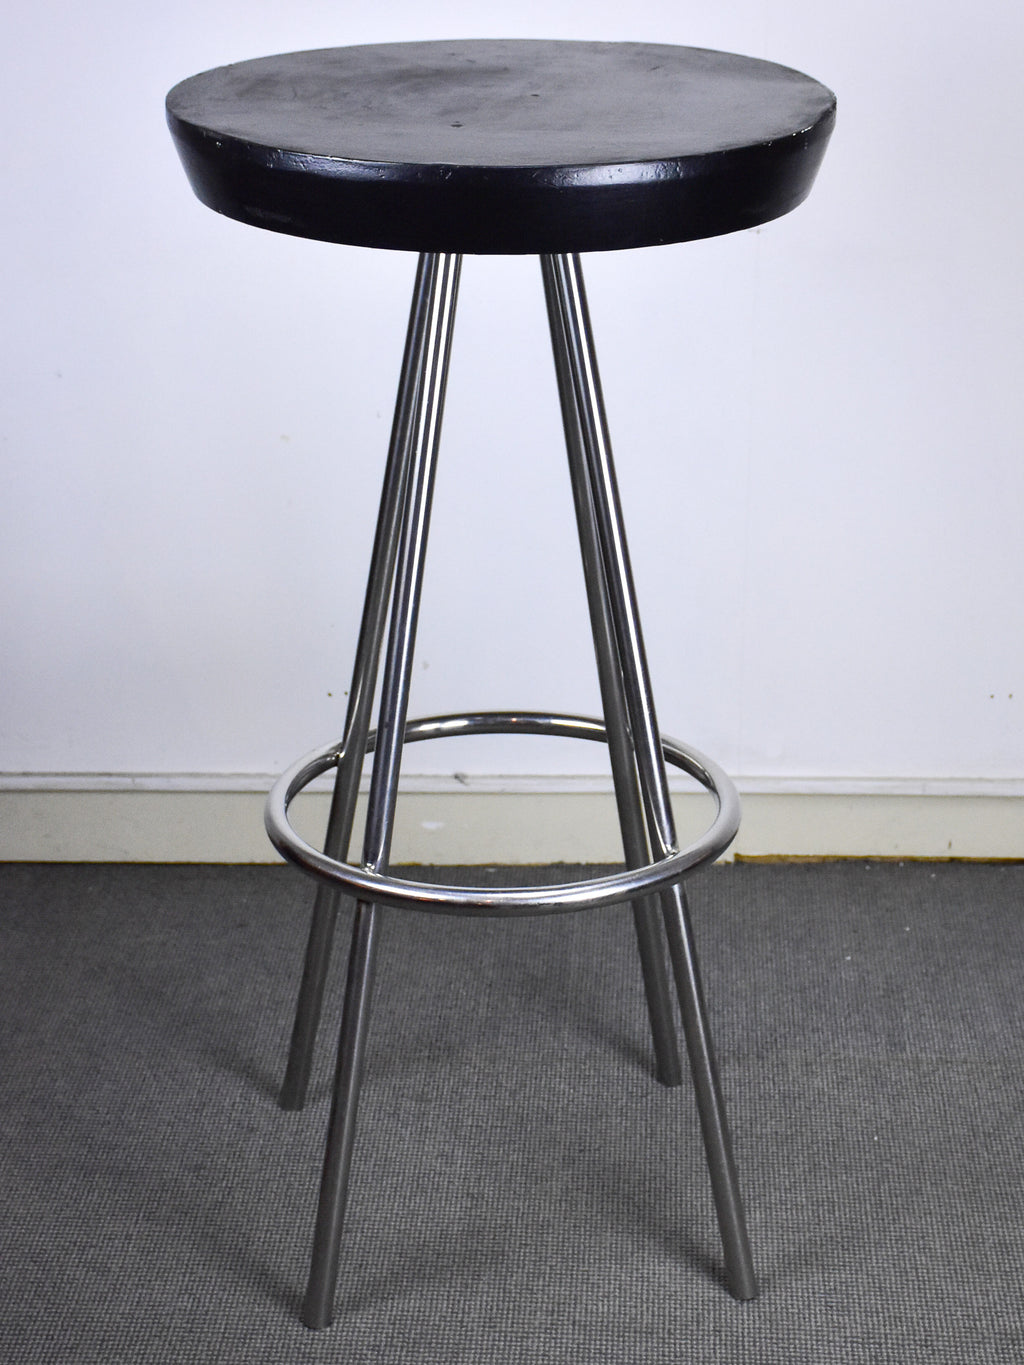 Vintage high bar table - round